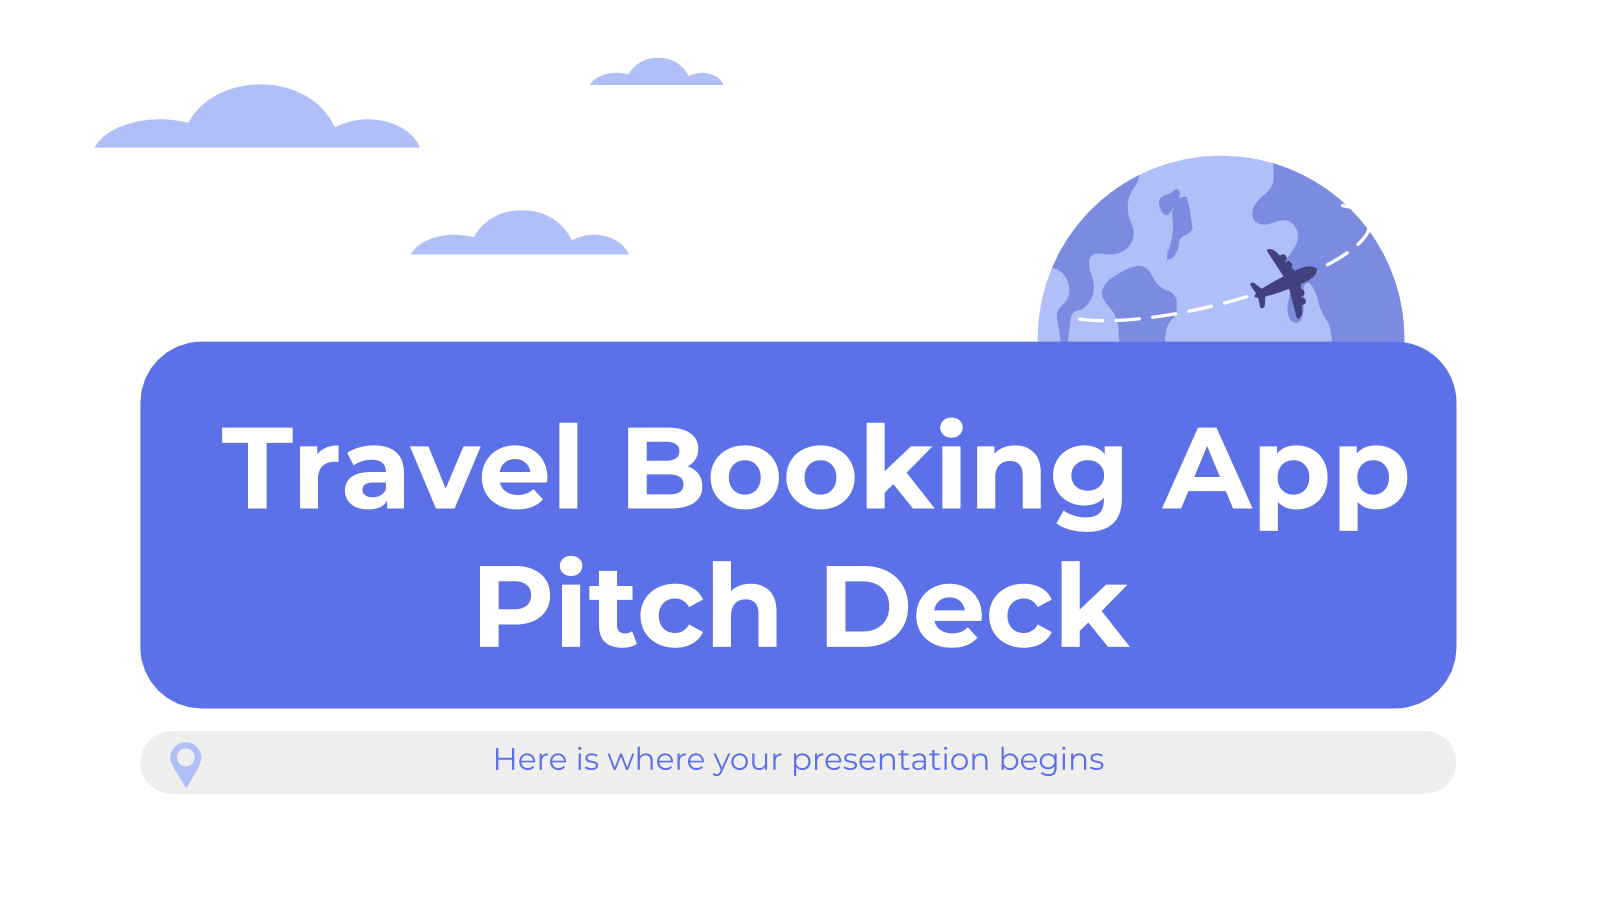 Travel Booking App Pitch Deck presentation template